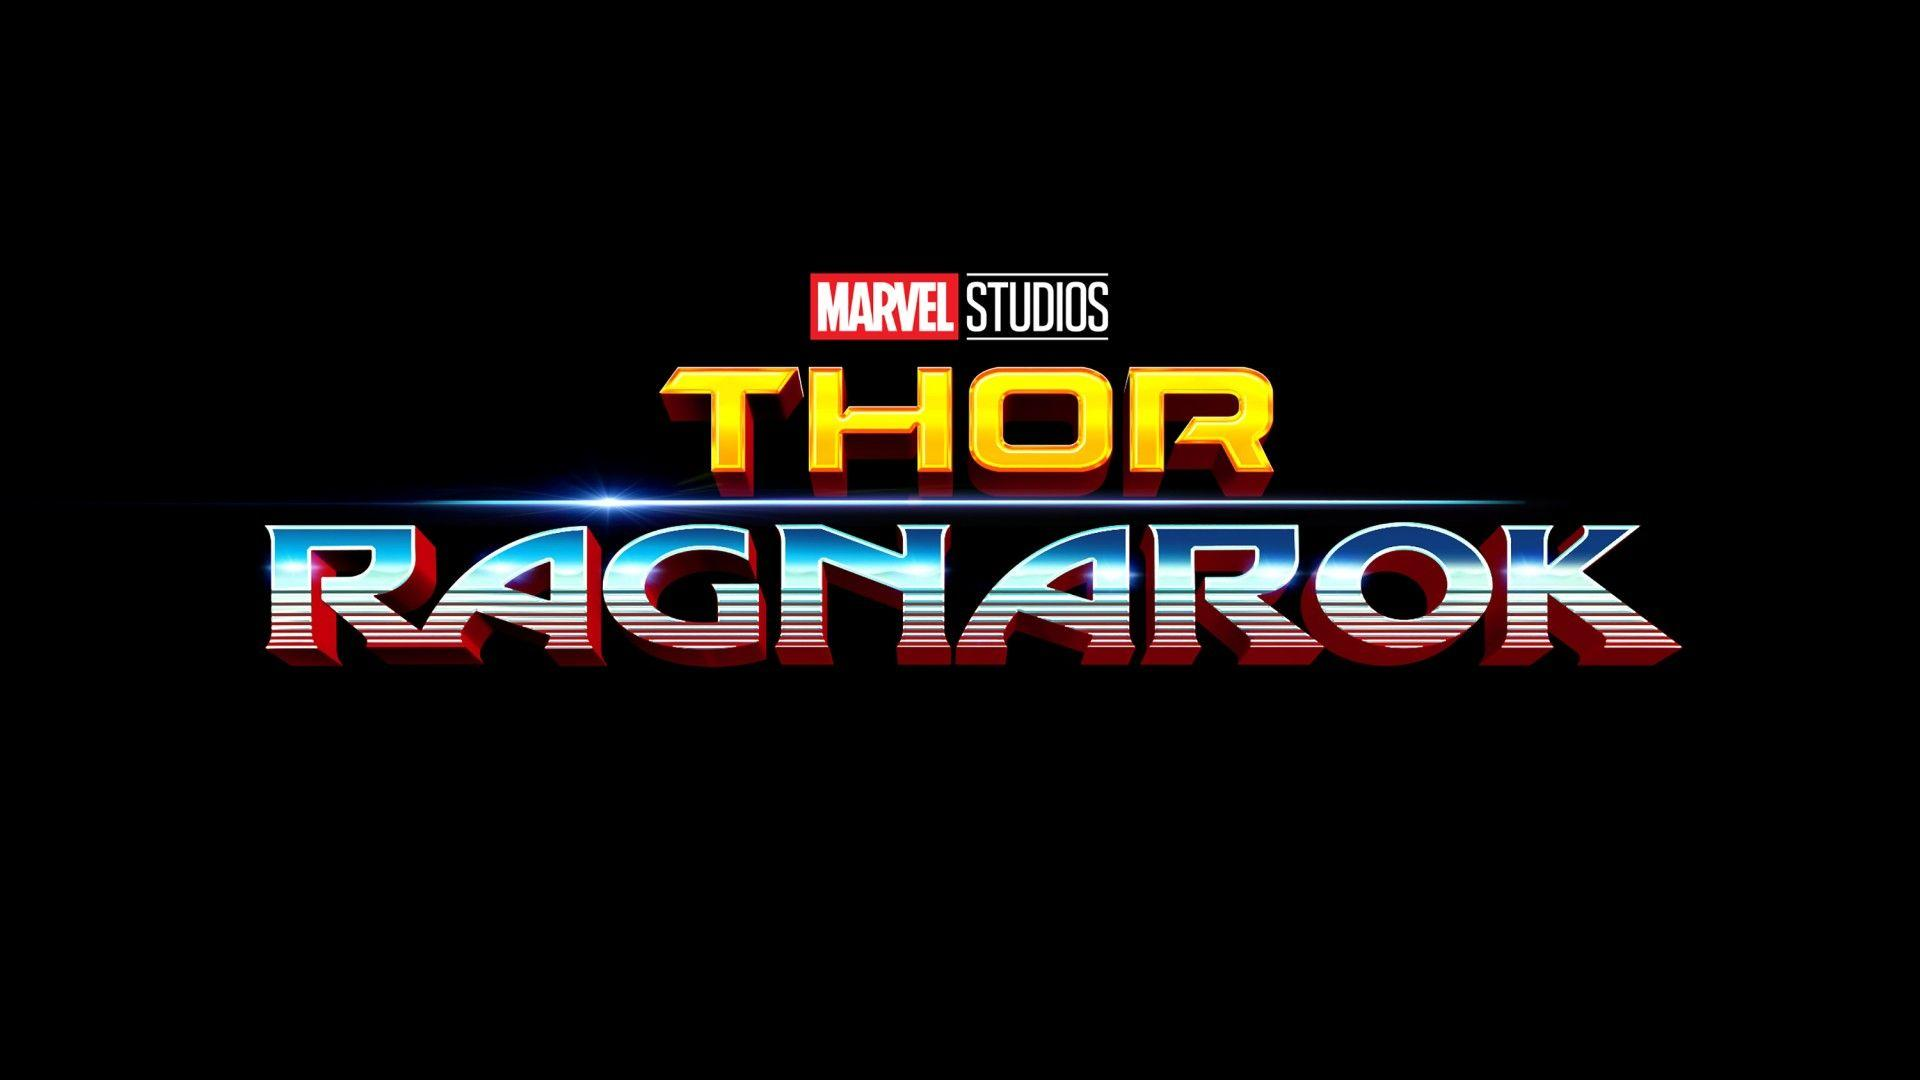 Wallpaper Thor Ragnarok, 2017 Movies, HD, Movies, #1697